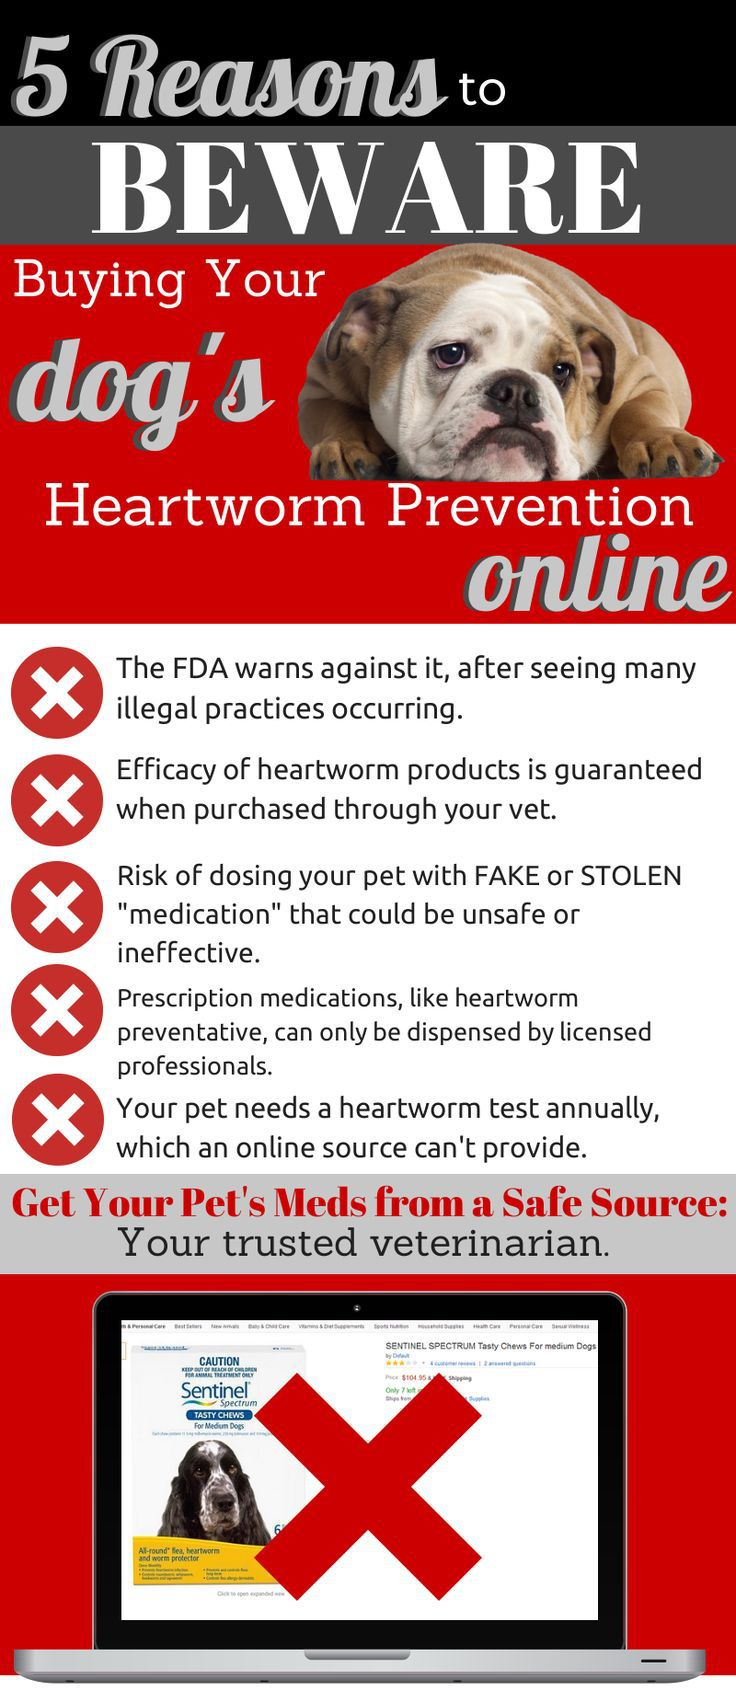 April is Heartworm Awareness Month! Heartworm prevention